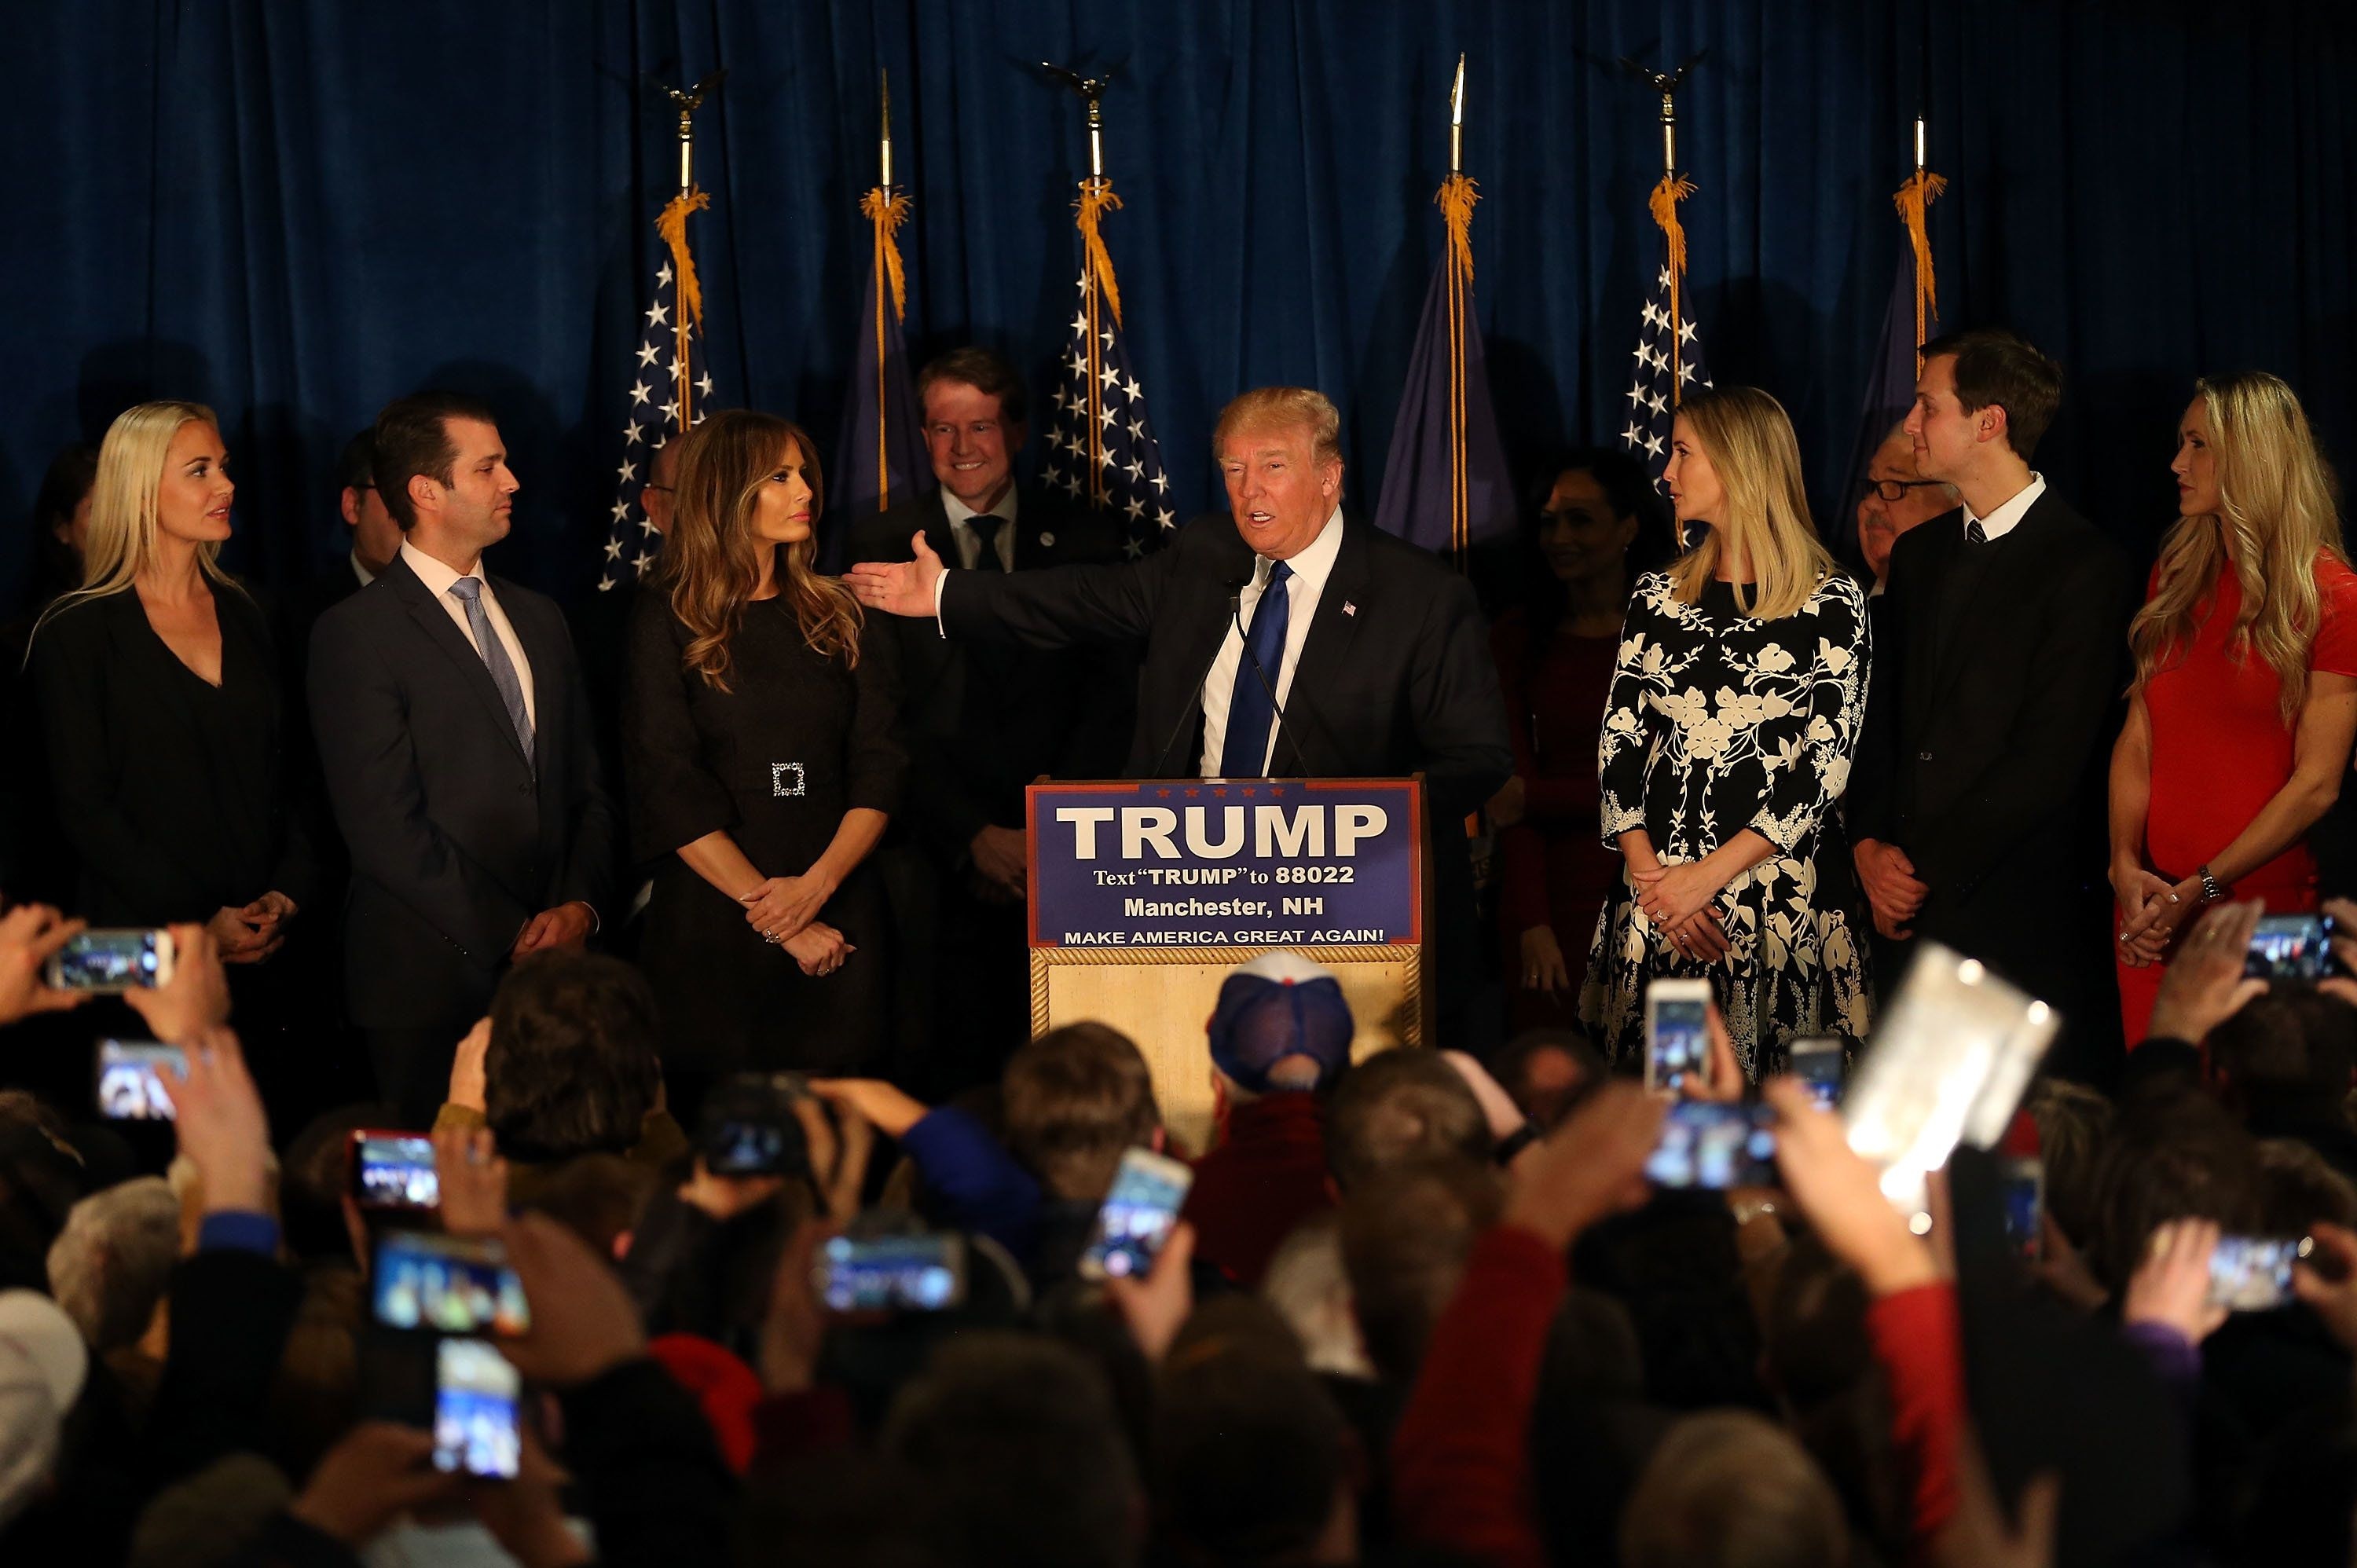 Donald McGahn II, center, stands with Donald Trump on the stage during an election night party Feb. 9, 2016 in Manchester, Ne